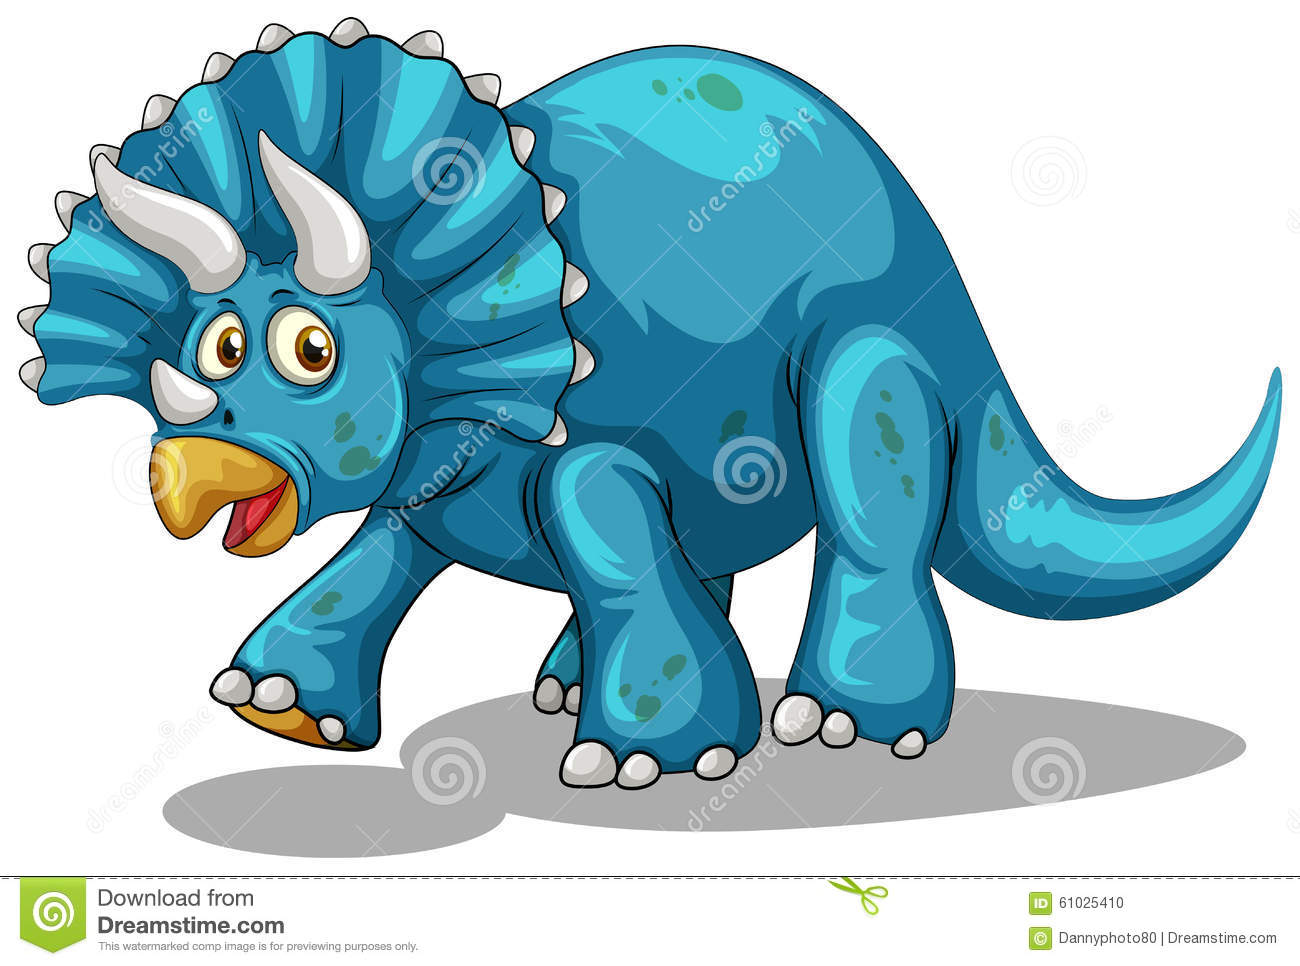 Find great deals on eBay for blue dinosaur. Shop with confidence.